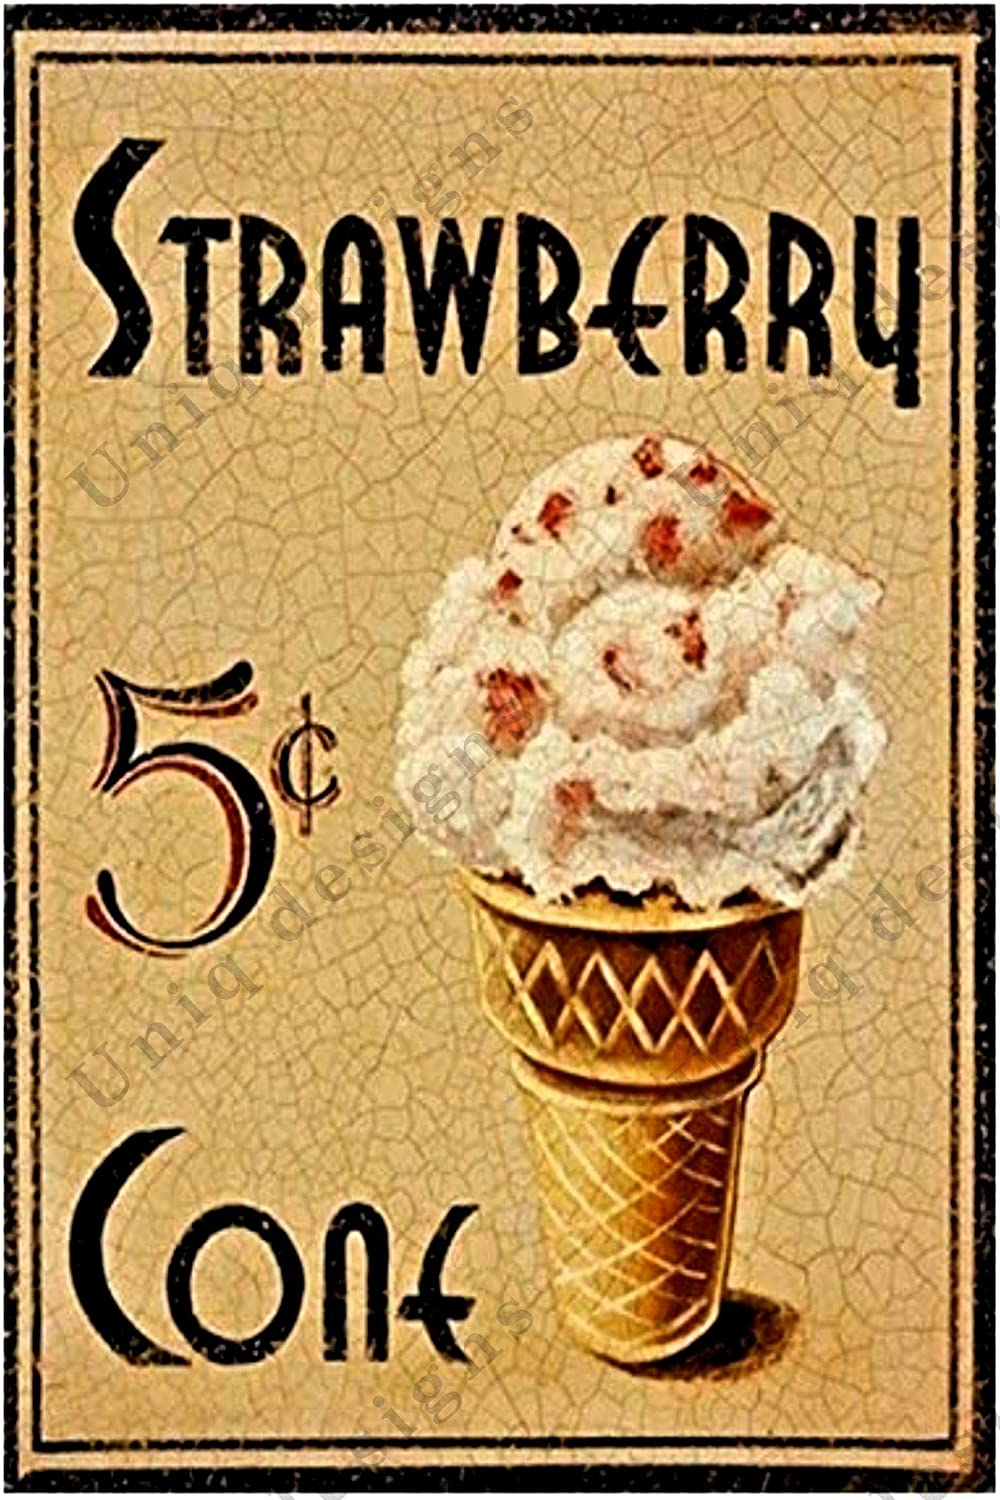 UNiQ Designs Metal Tin Signs -Strawberry Cone Food Sign -Ice Cream Decorations Metal Food Signs Ice cream Cone Sign -Vintage Poster Food Tin Food Signs - Ice cream kitchen Tin Signs Vintage Funny 12x8